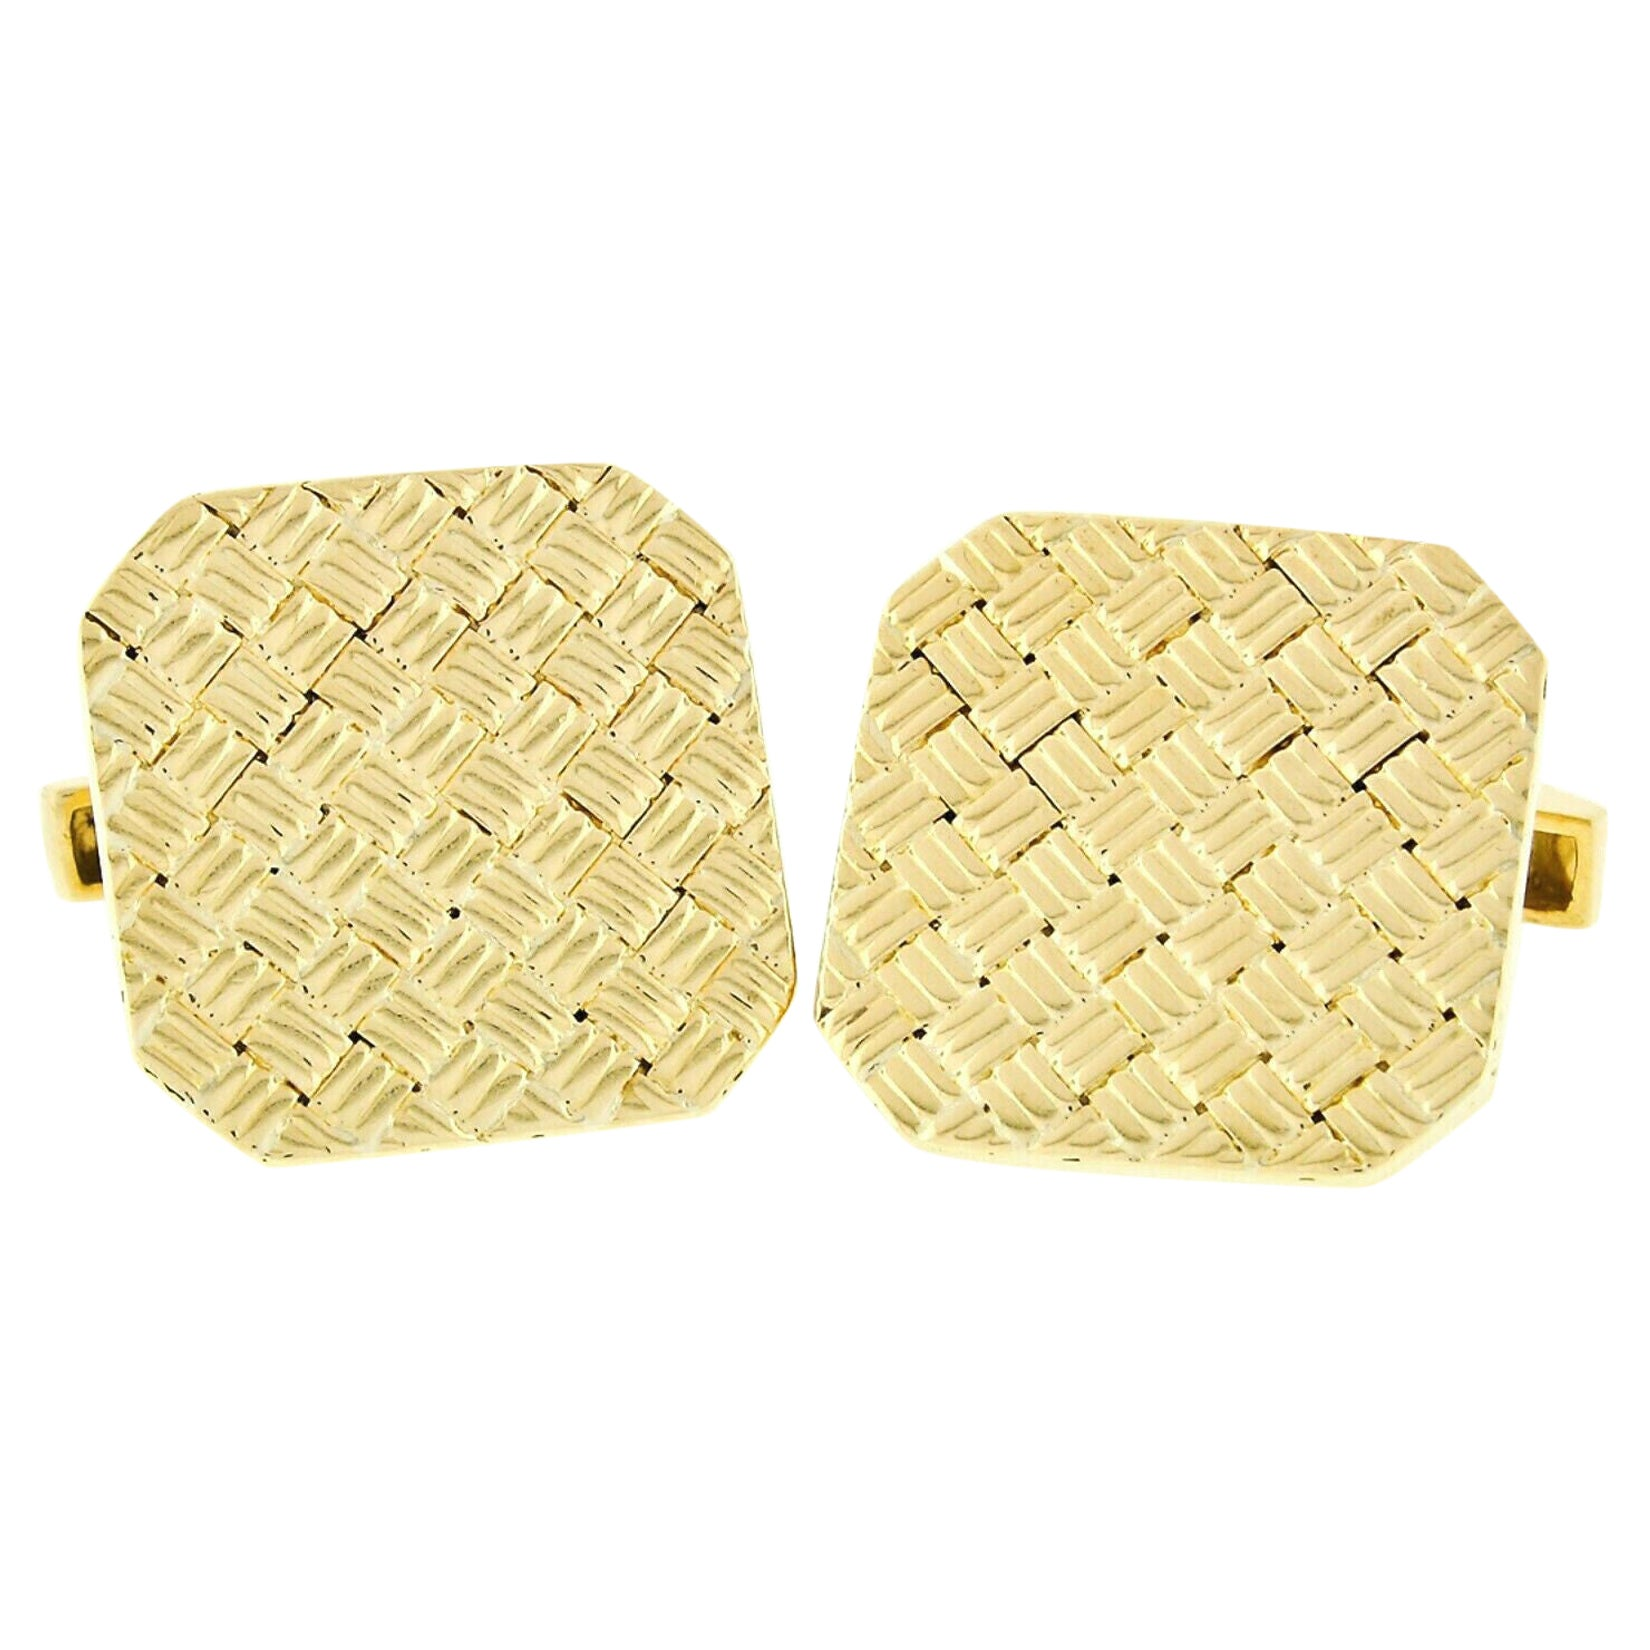 Vintage Tiffany & Co. 18k Yellow Gold Squared Woven Basket Pattern Cuff Links